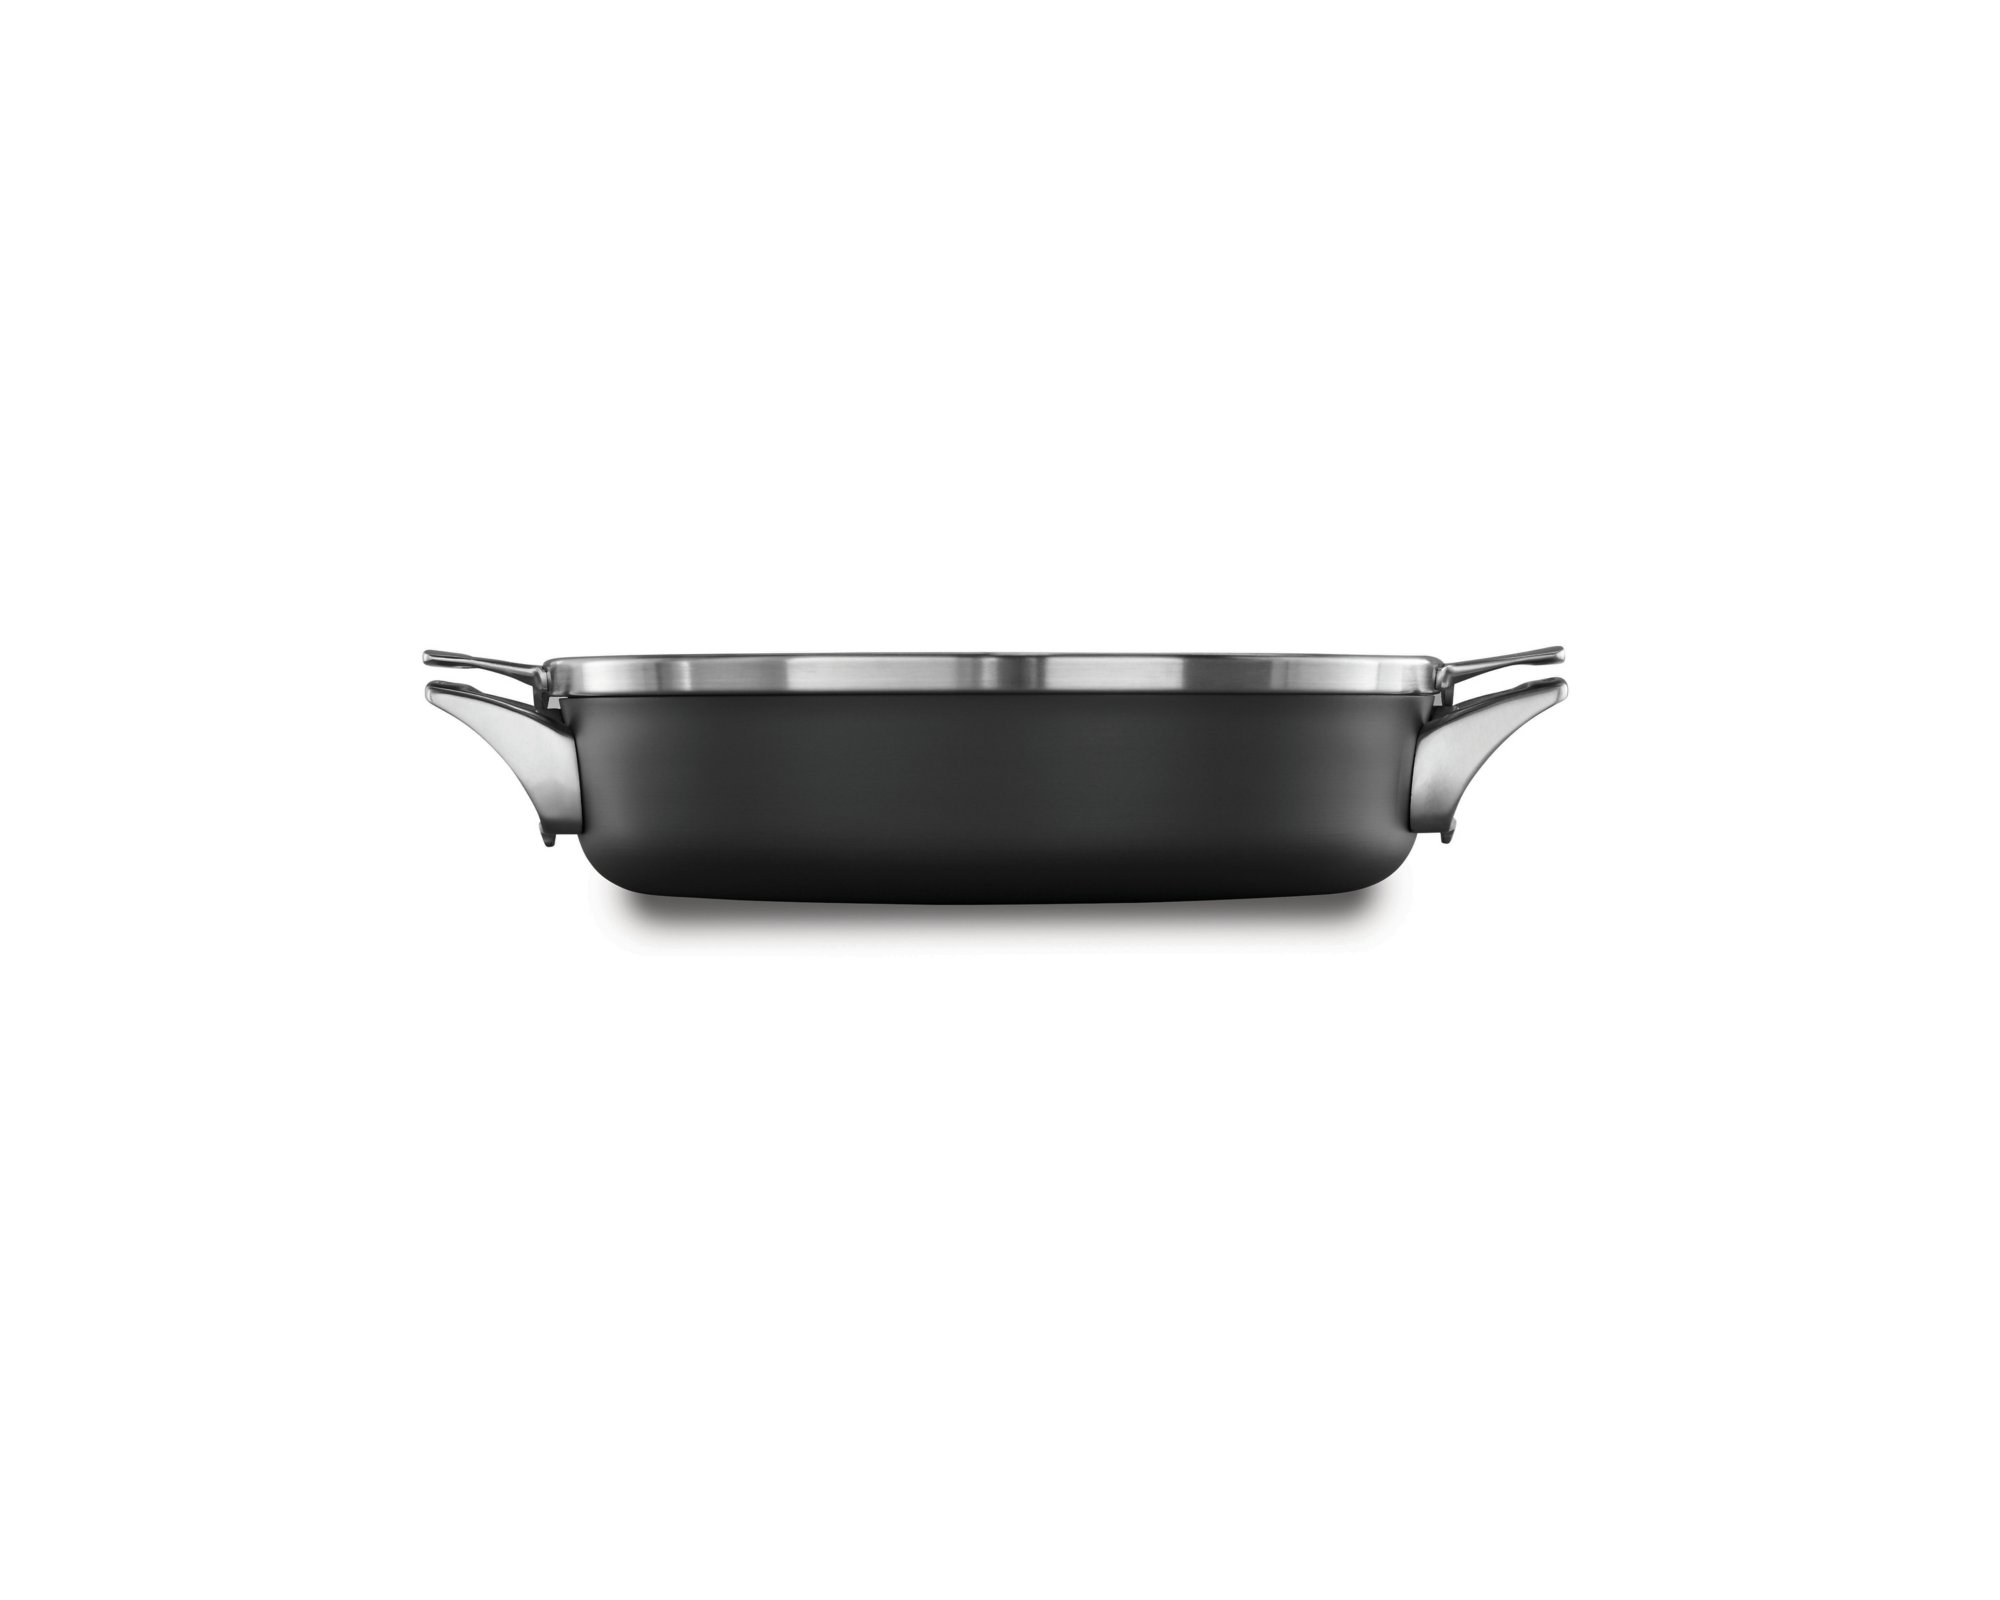 Calphalon Premier™ Space Saving Hard Anodized Nonstick 5 qt. Sauteuse Pan with Cover